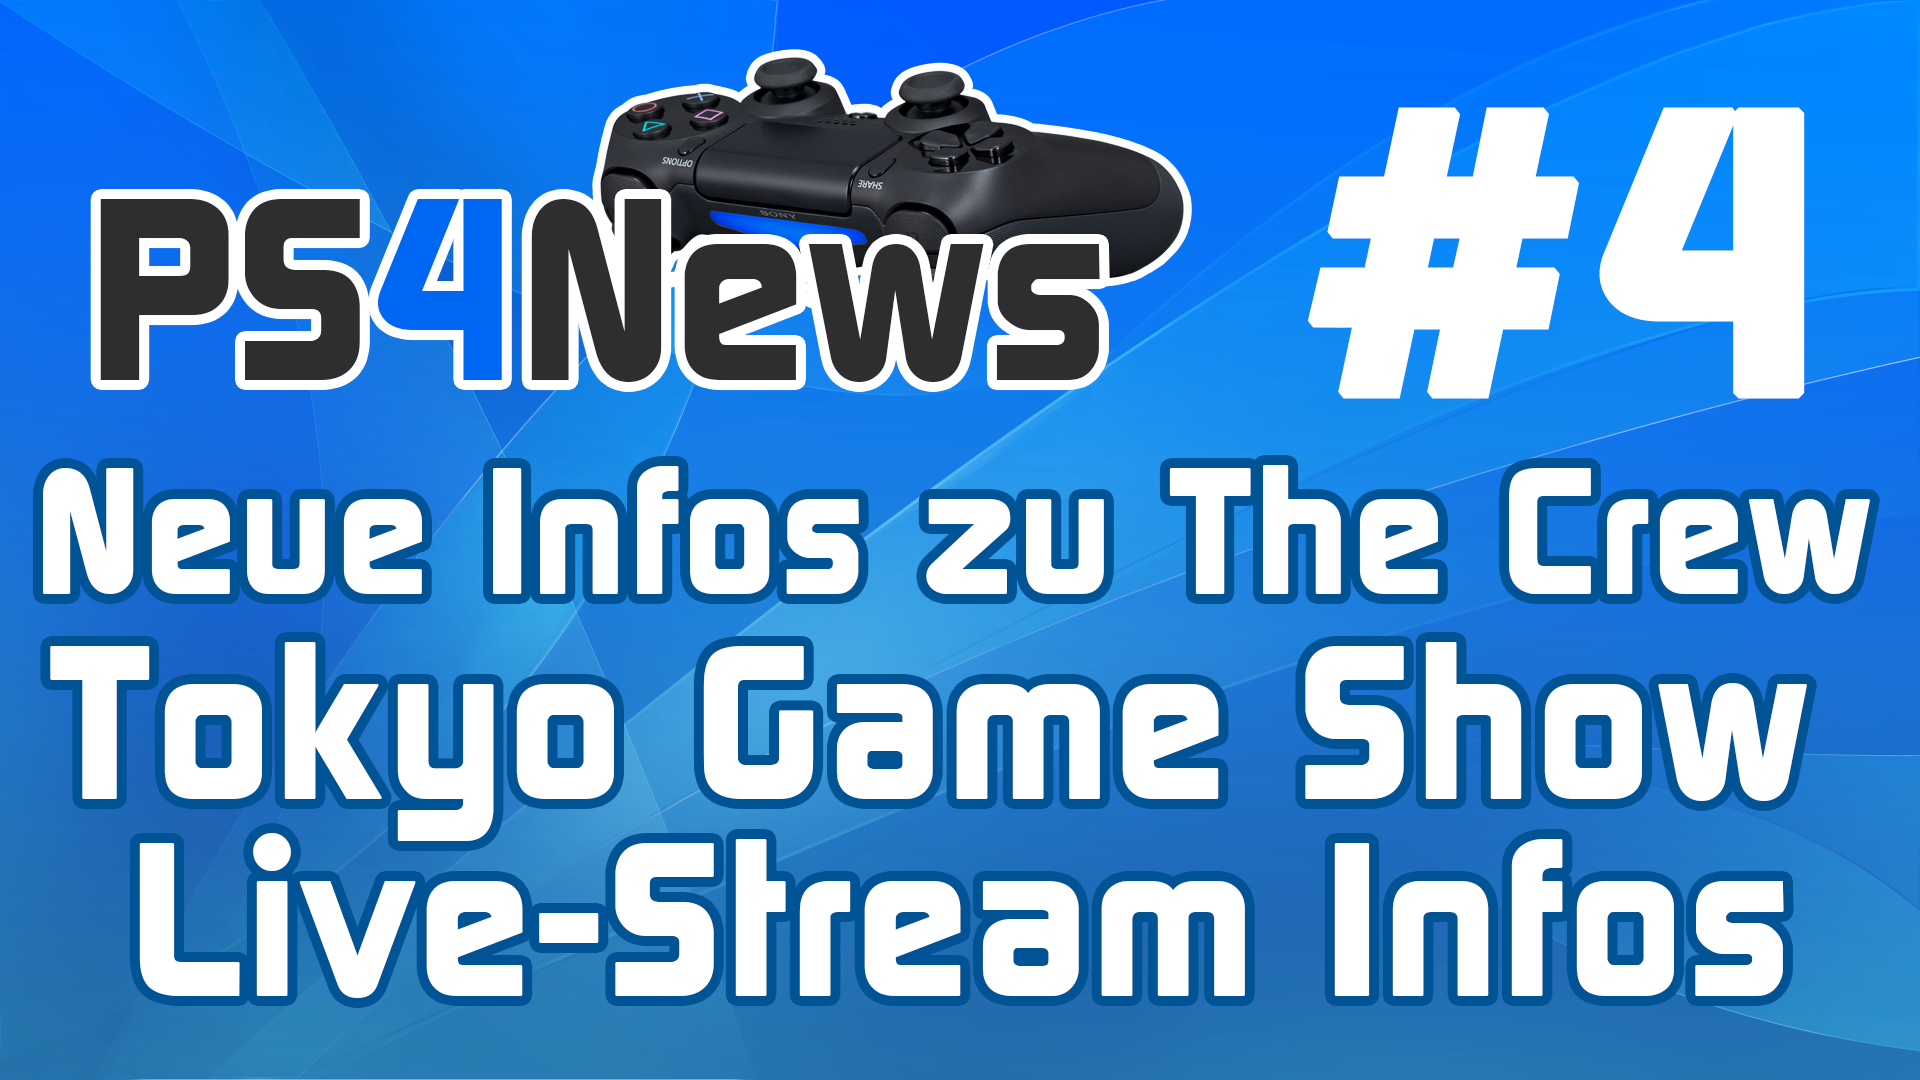 PS4News #4 Neue Infos zu The Crew – PS4 Livestream der Tokyo Game Show – Shadow Warrior Uncut